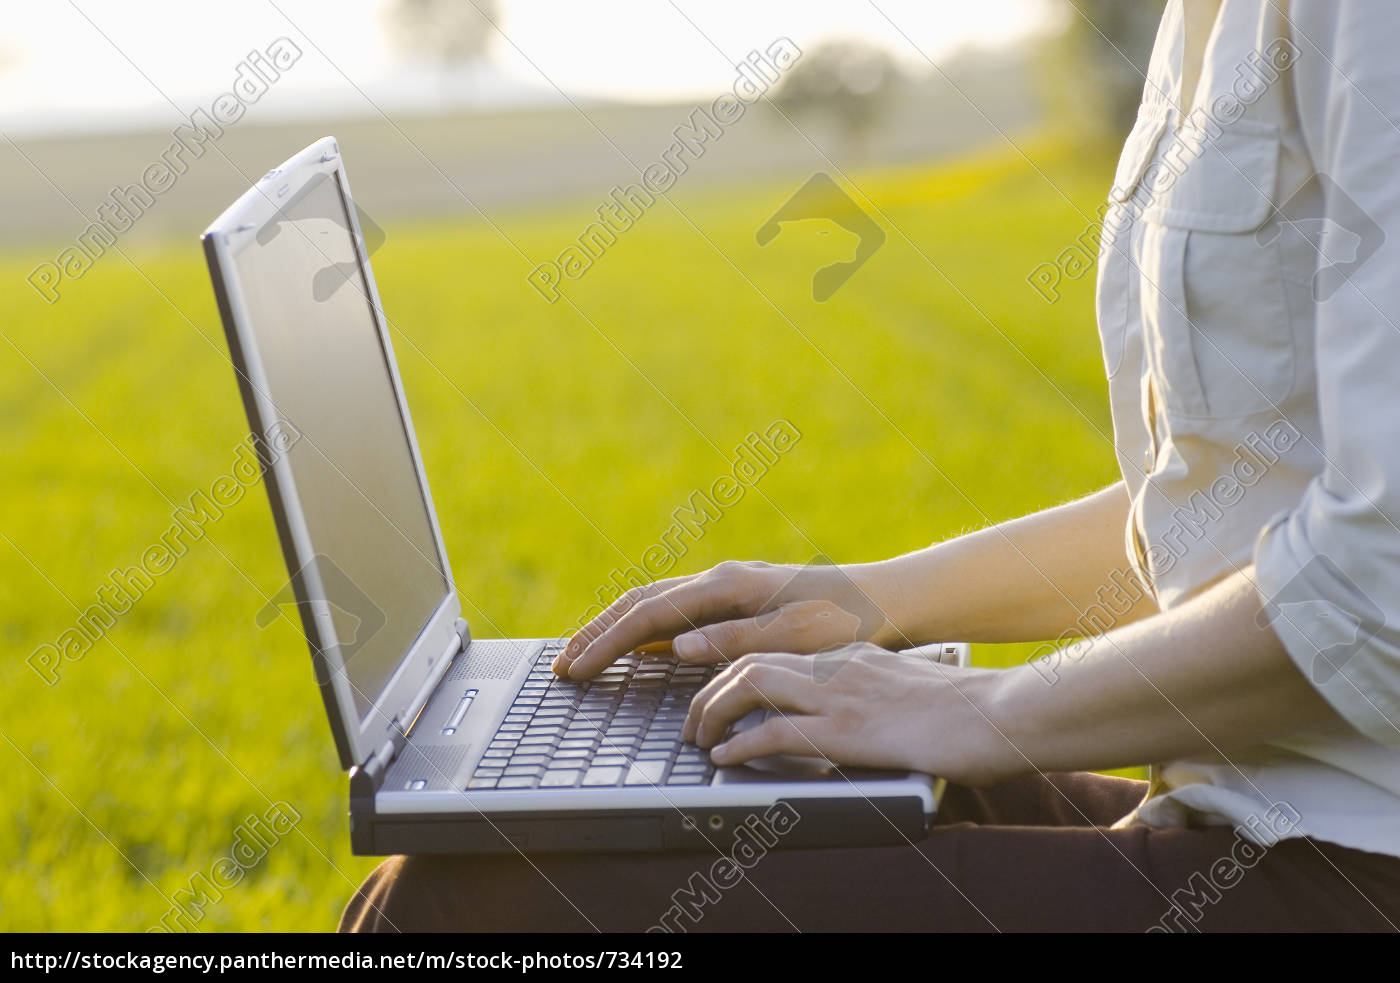 laptop, outdoor - 734192